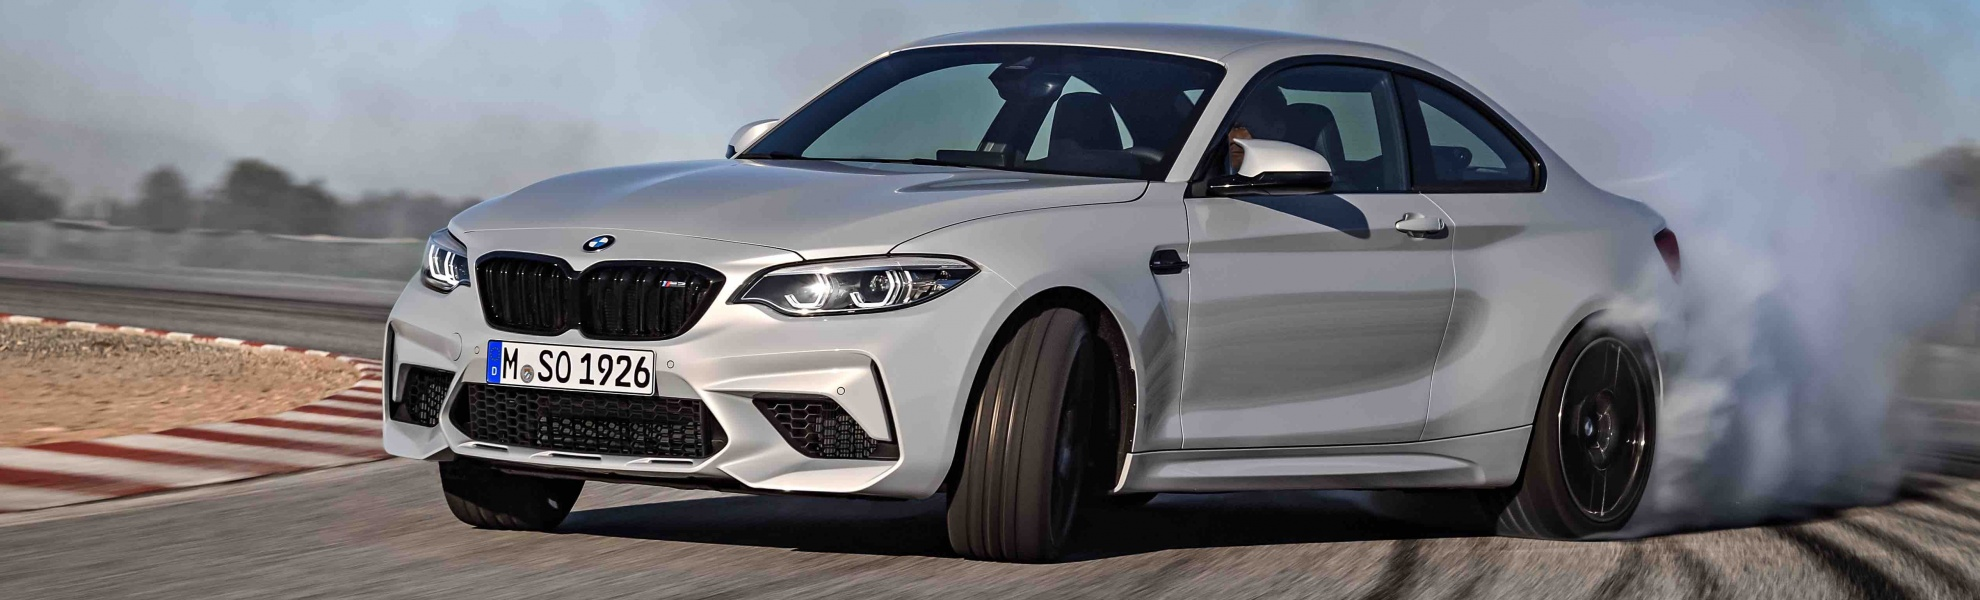 the-new-bmw-m2-competition_5.jpg